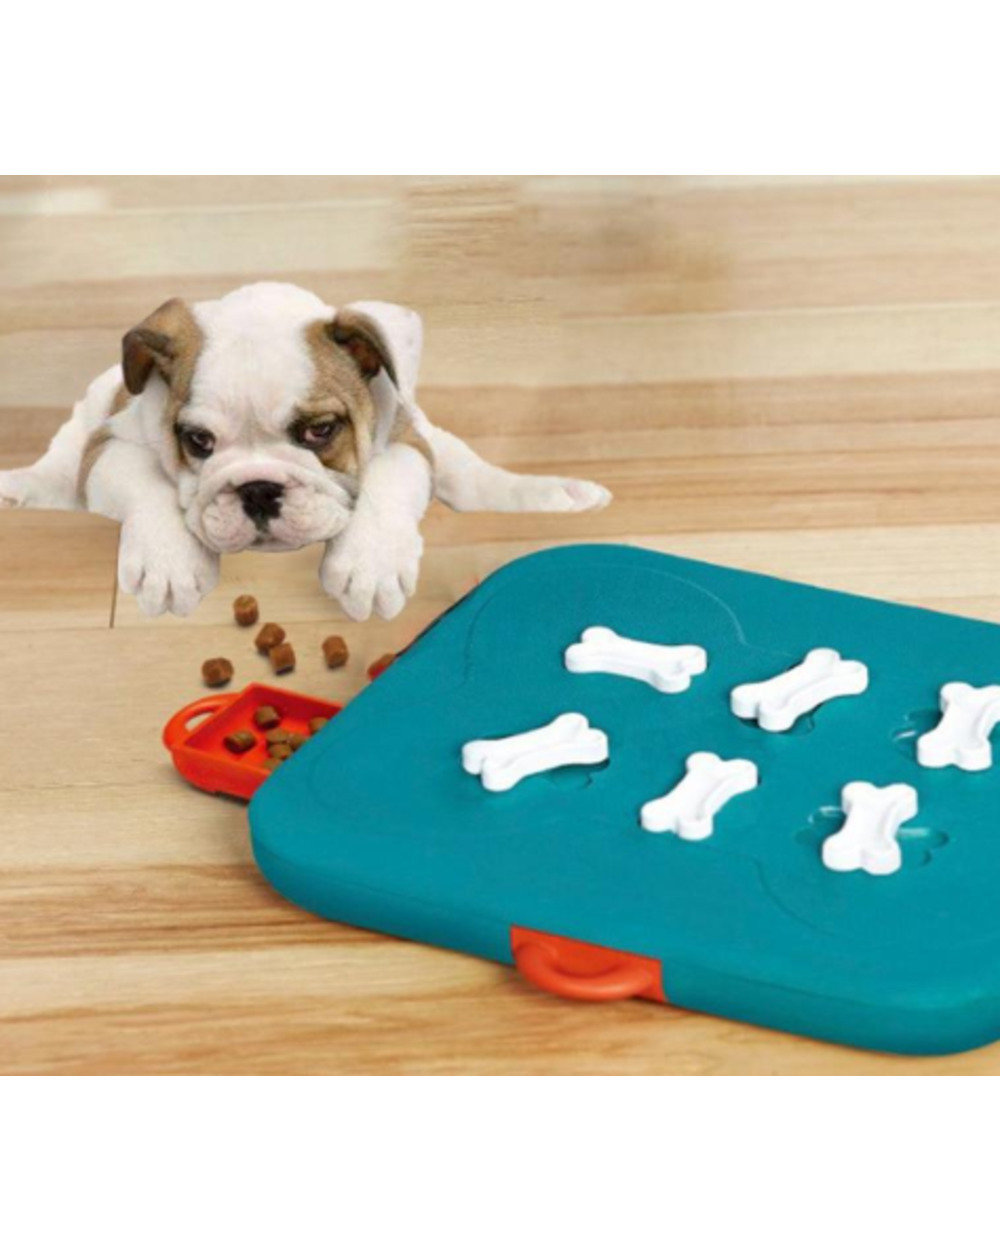 Dog Puzzle Toy Interactive Dog Toy 3